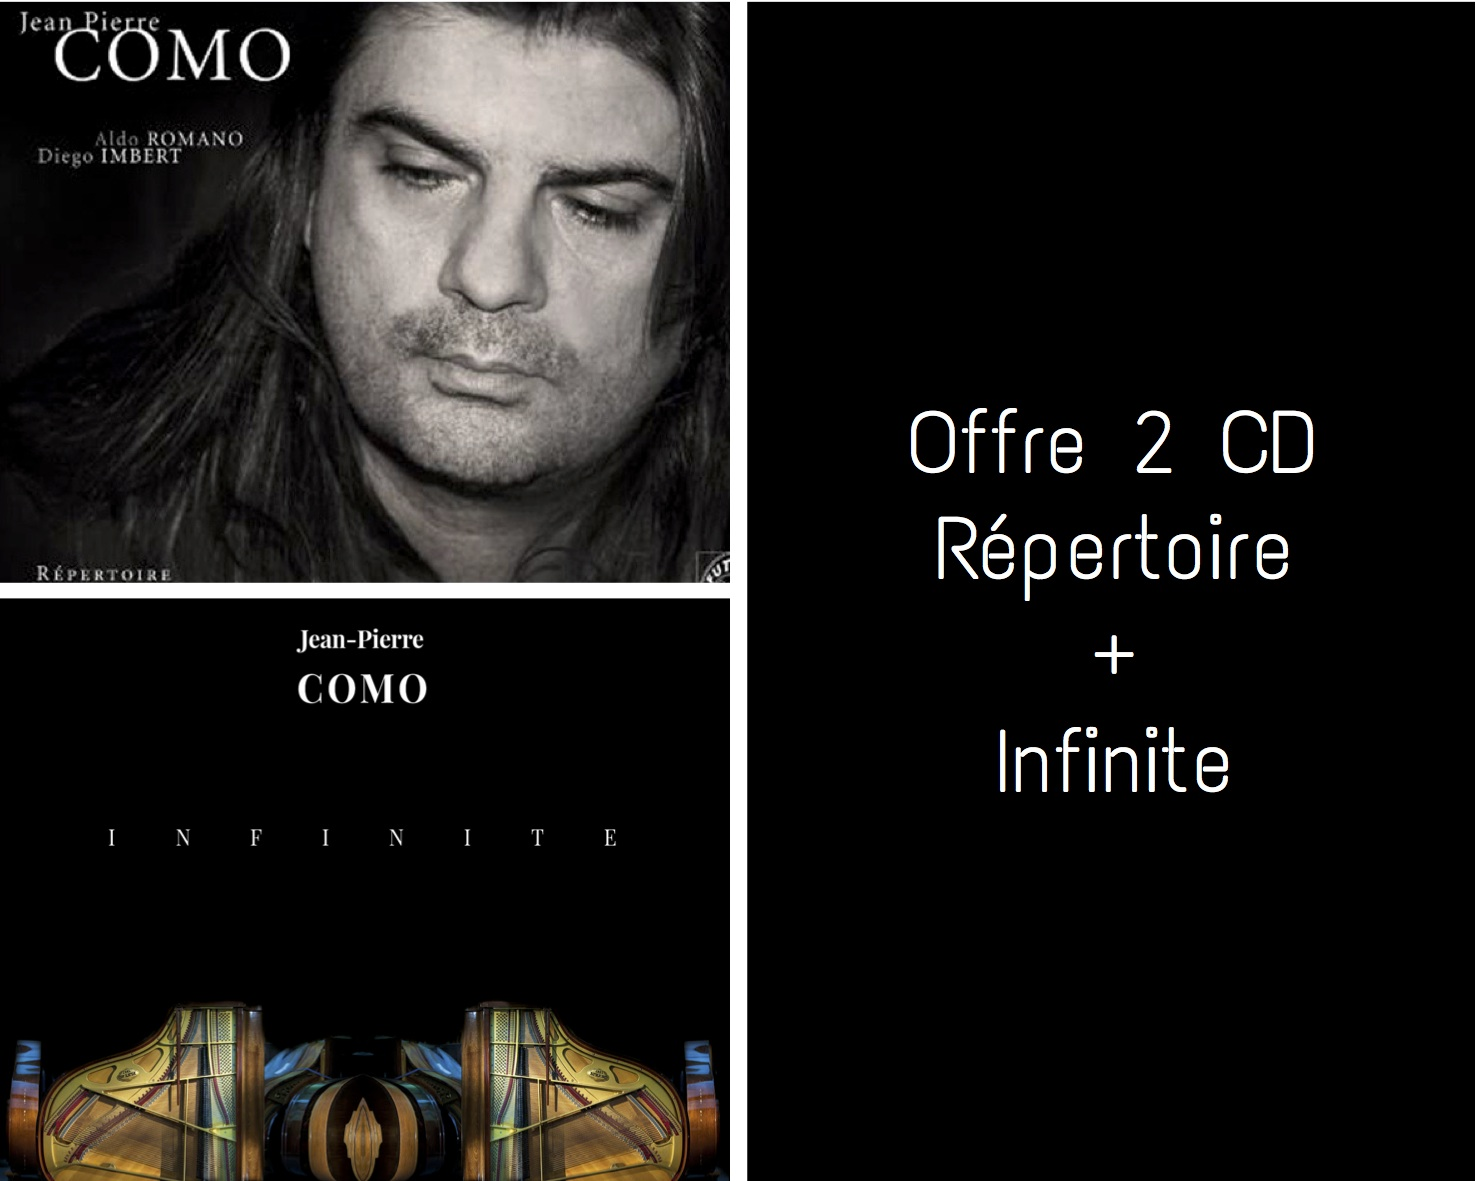 Re_pertoire+Infinite-1526026095.jpg